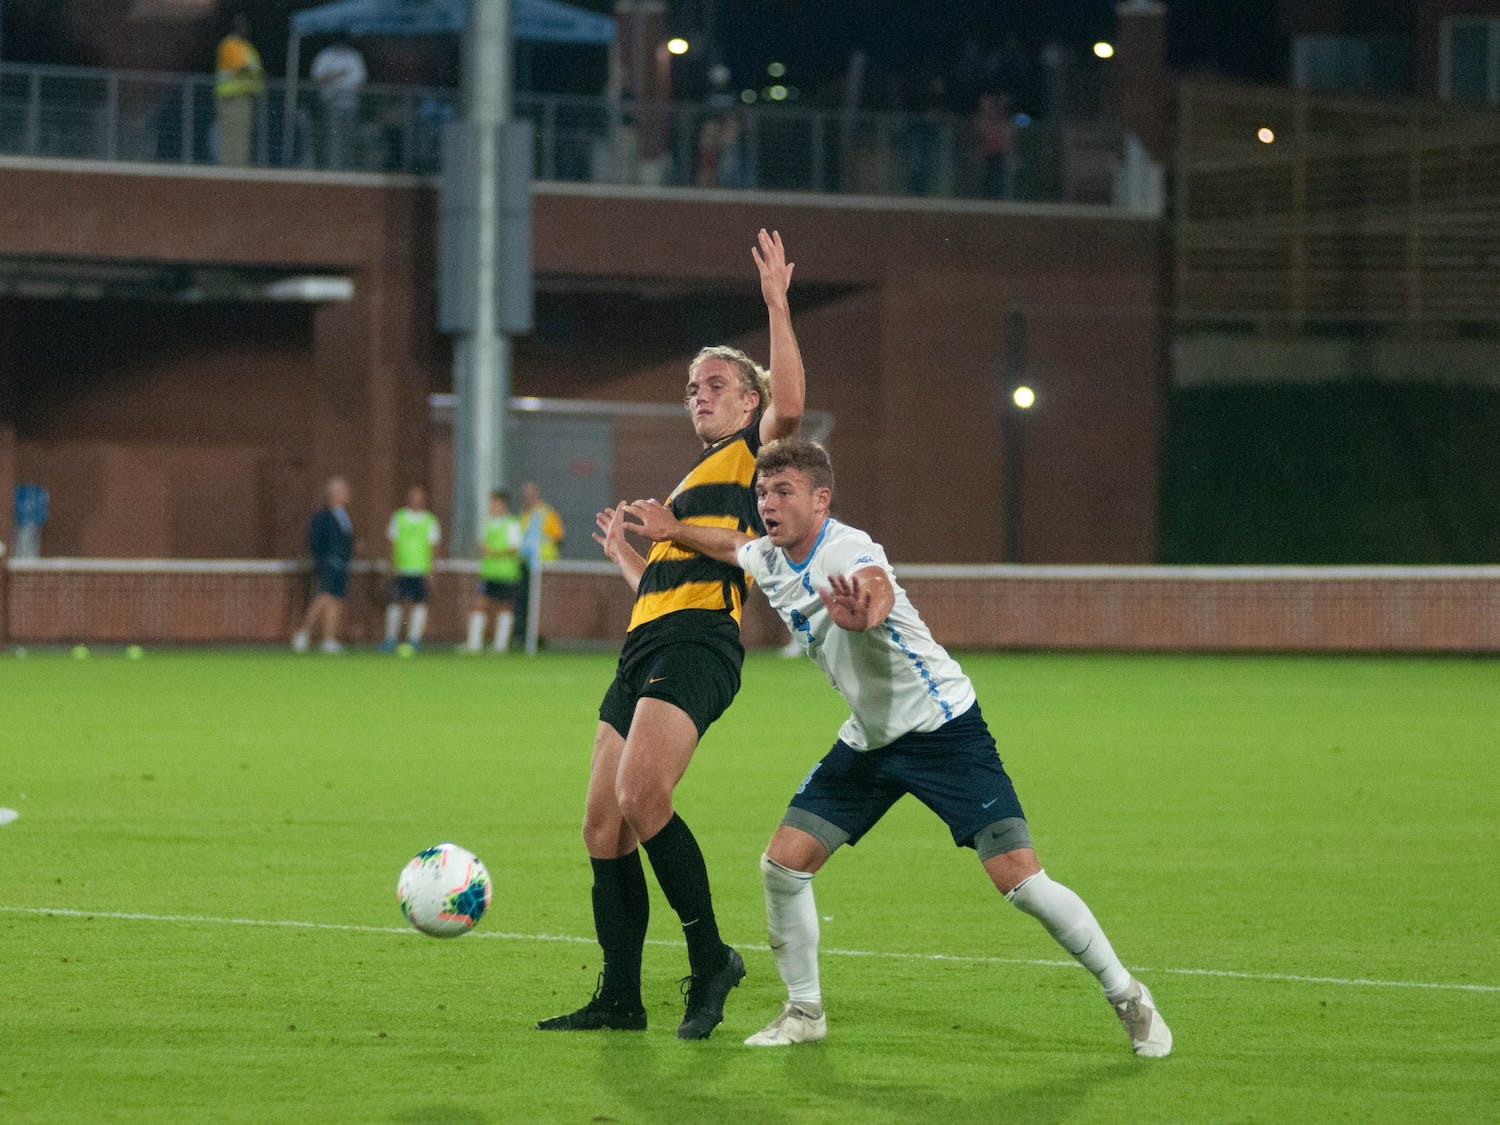 First-year UNC defender Blake Malone (4) and first-year Appalachian State University forward Nick Rodgers (8) fight for the ball on Tuesday, Oct. 29, 2019. UNC lost to Appalachian State University 1-0 on a penalty kick.